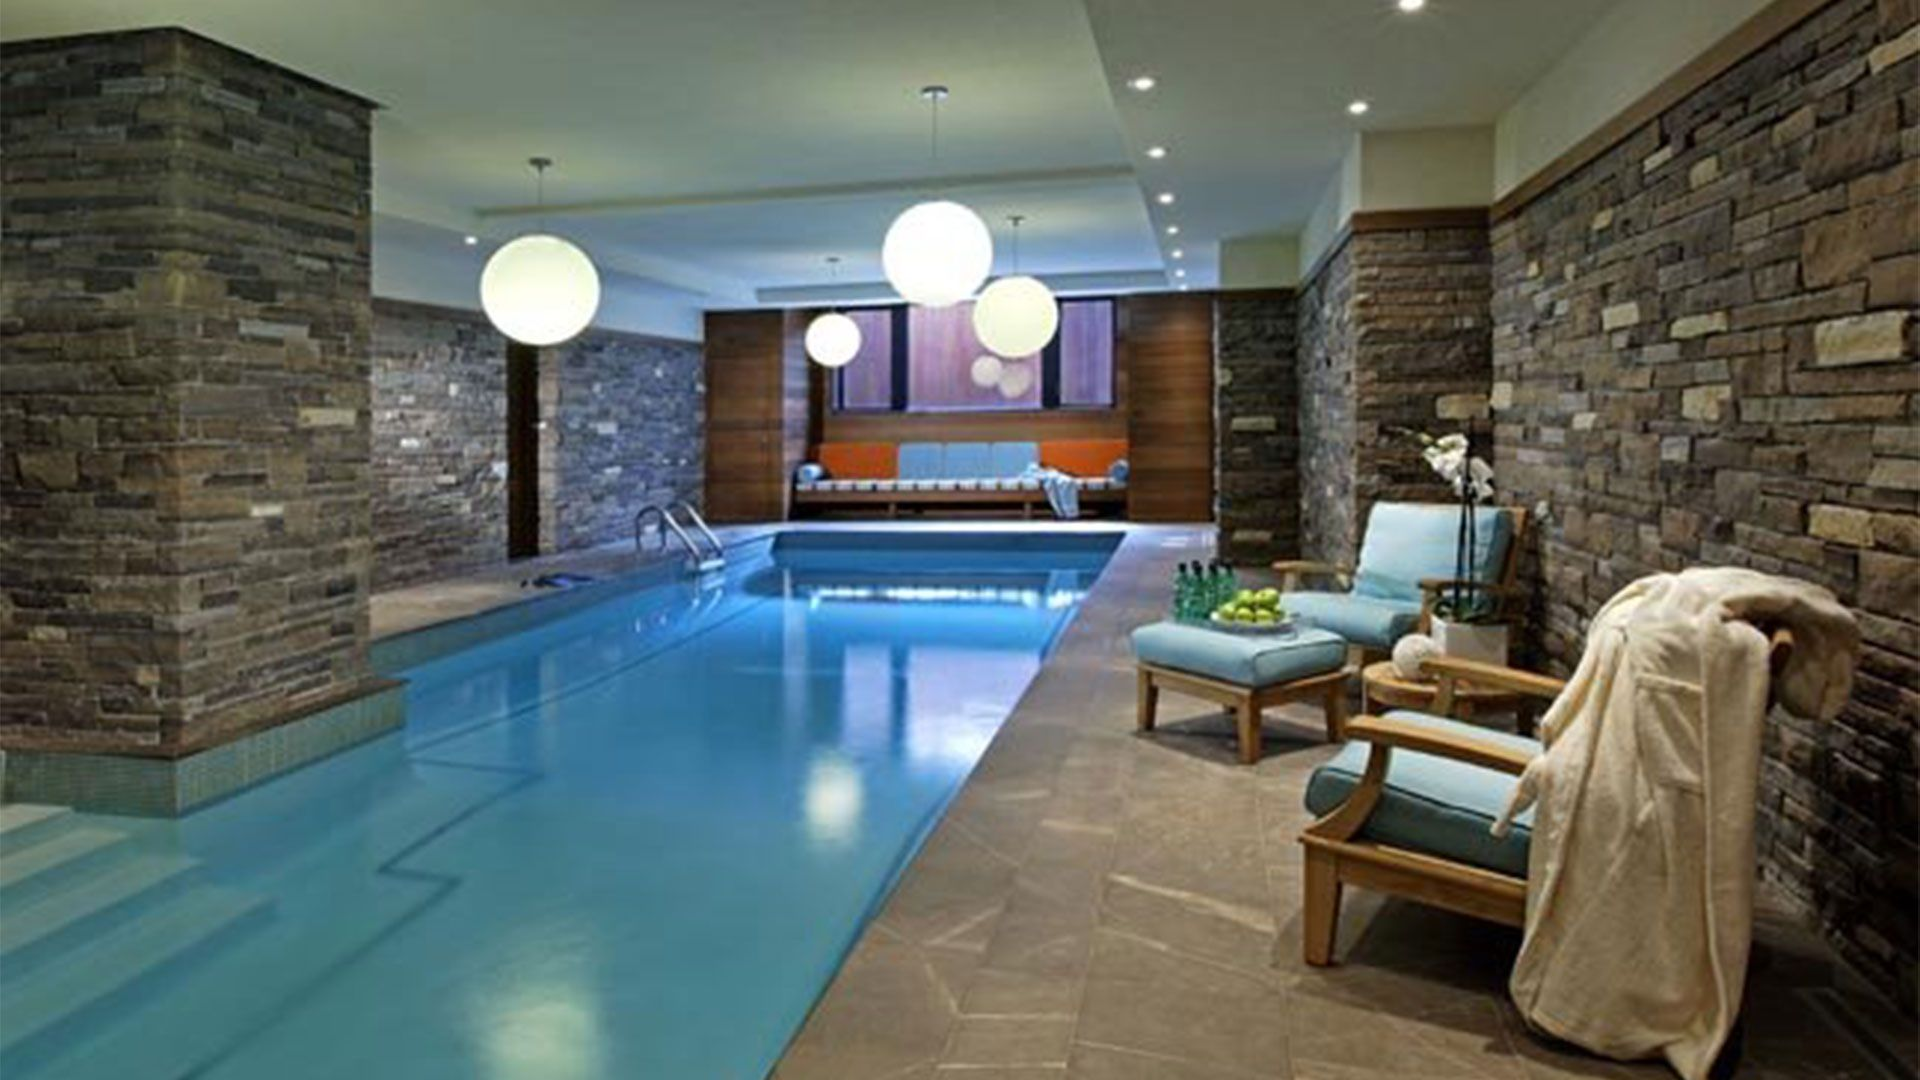 Houses with pools inside - 17 Best Images About Swimming Pool On Pinterest House How To Build And Swimming Pool